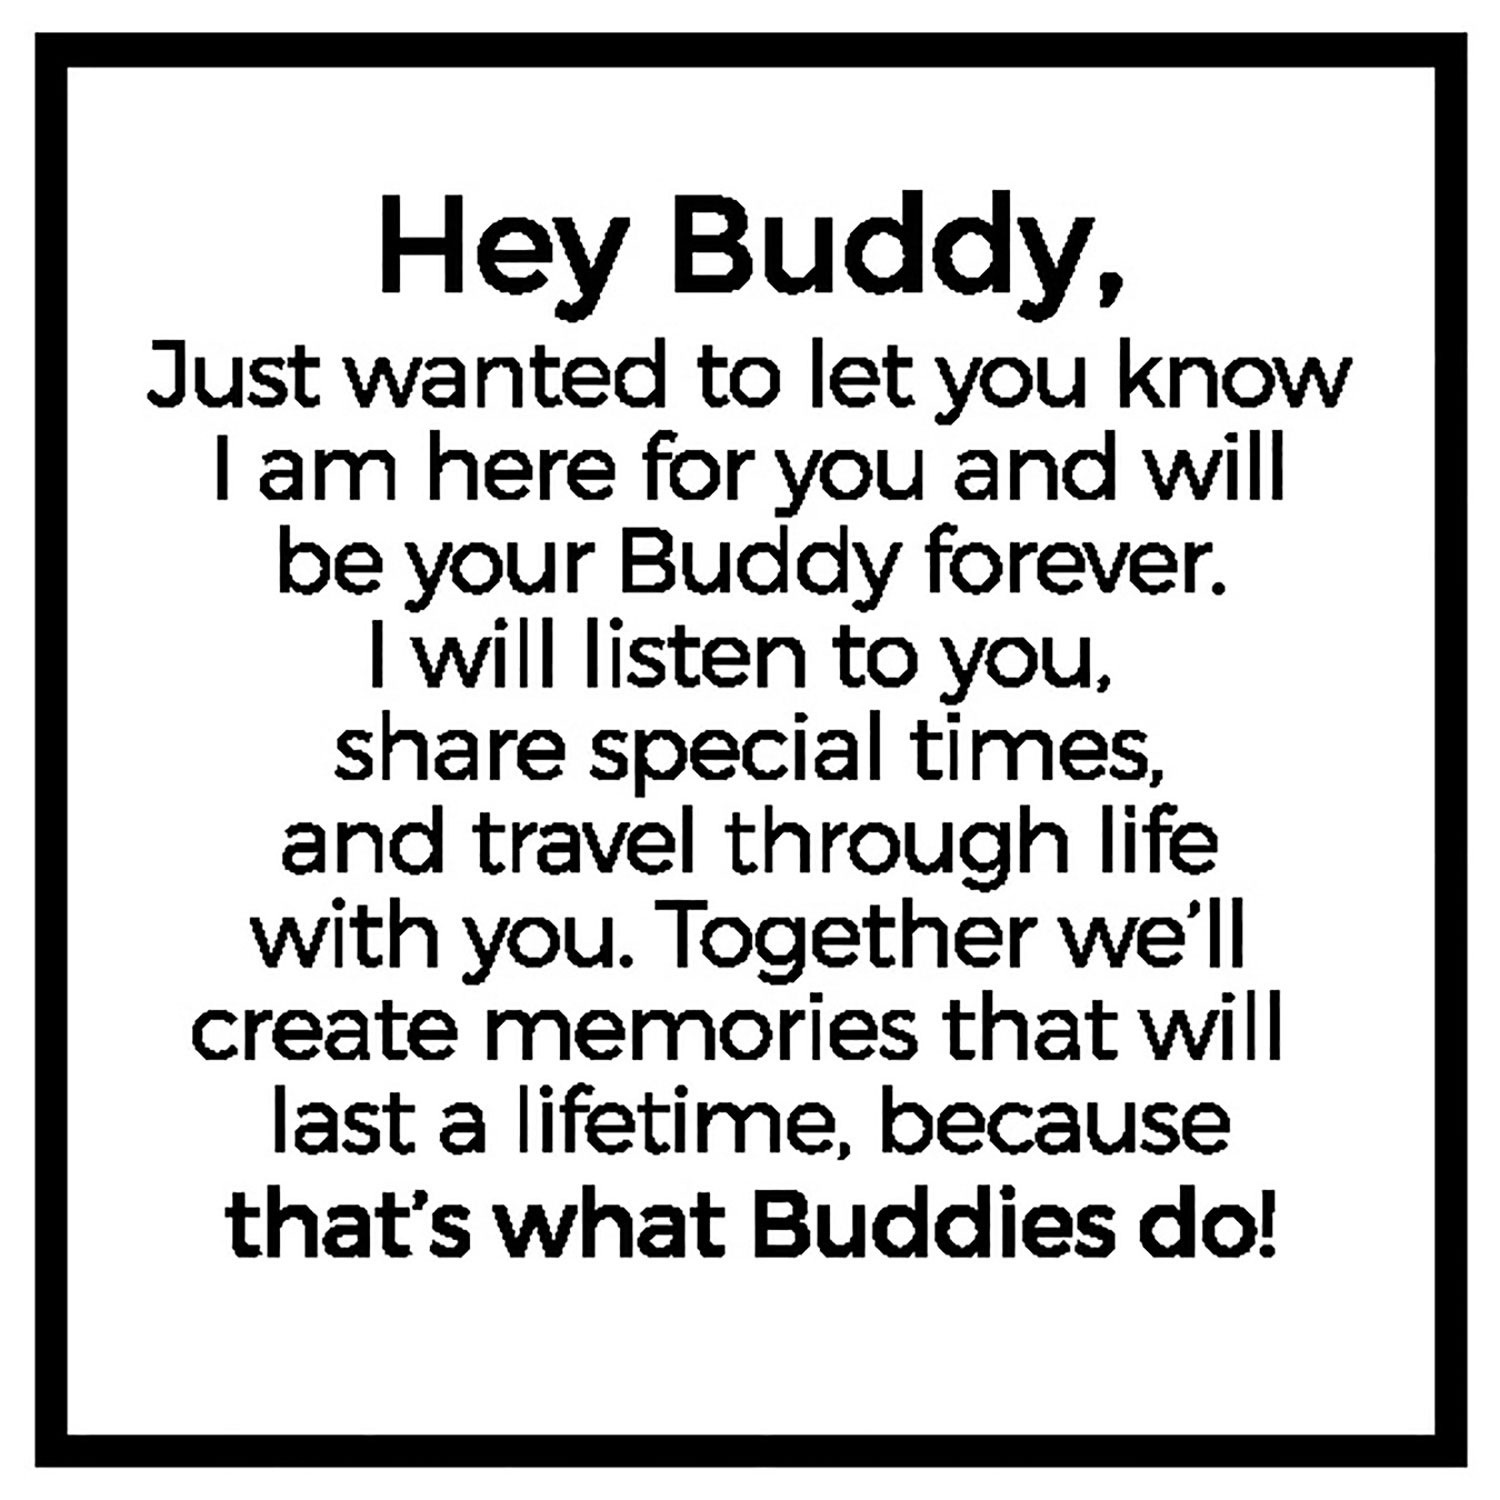 Hey Buddy organization message